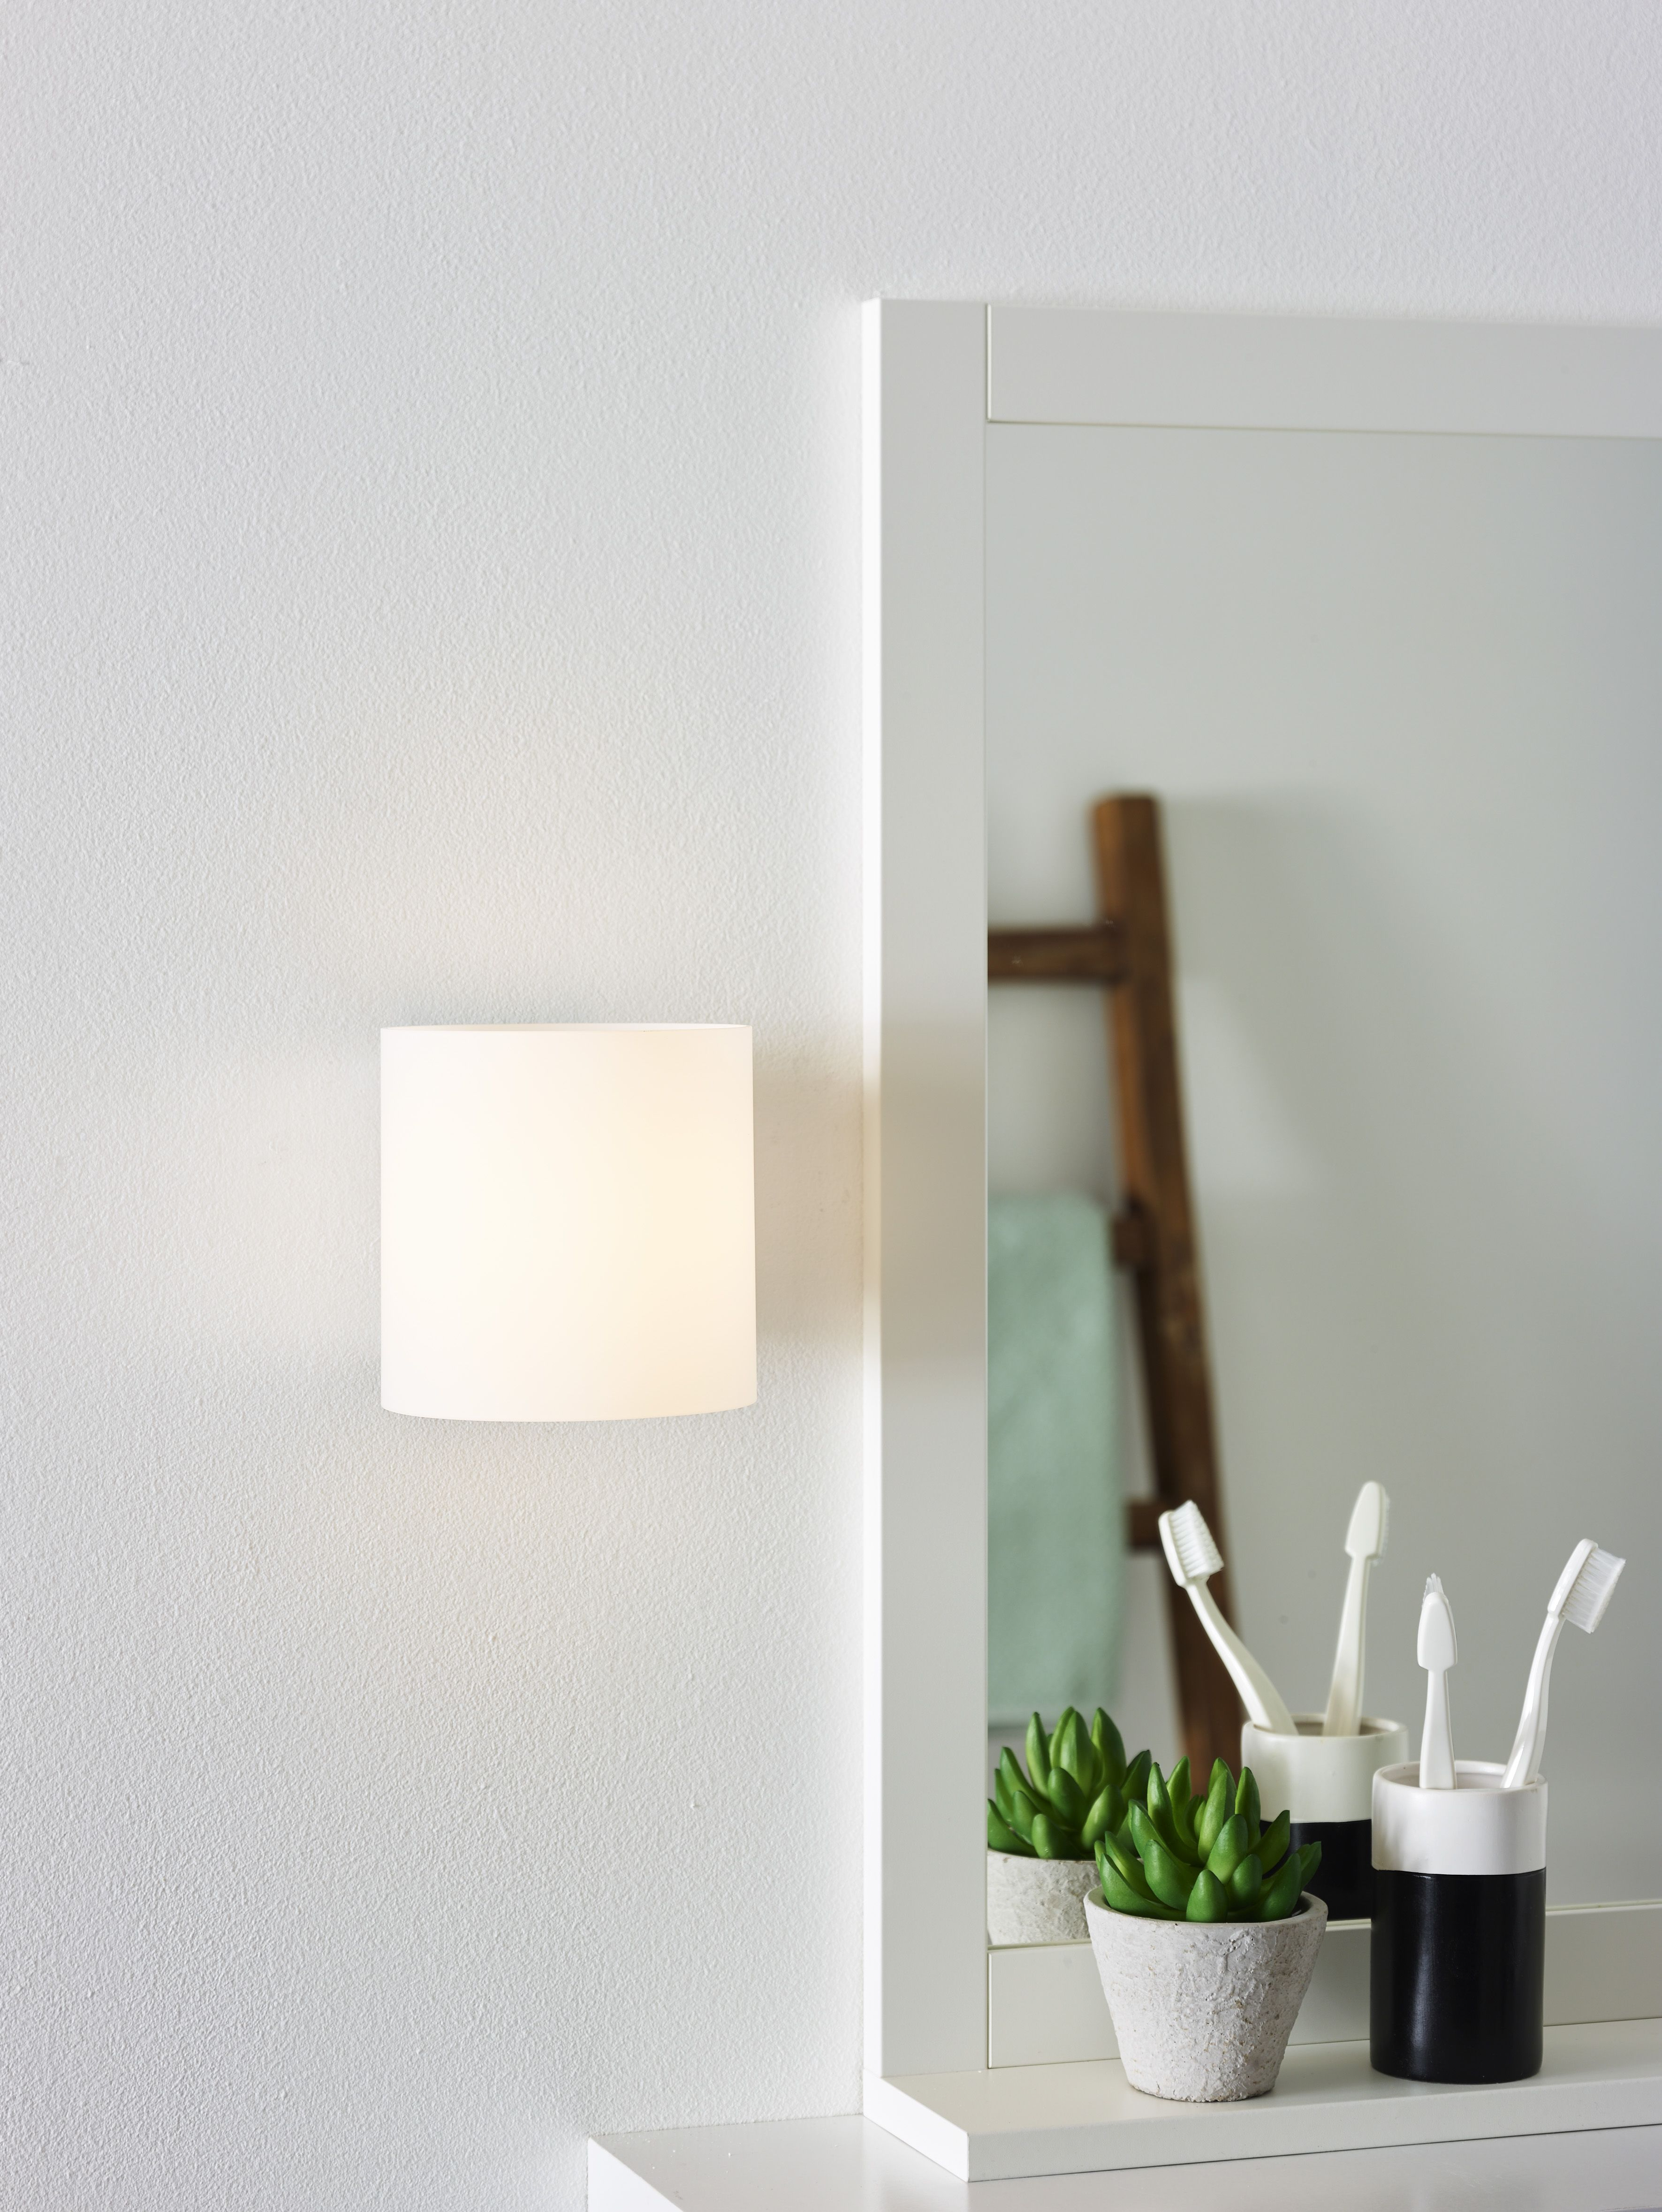 A Mirror Lamp That Provides A Beautiful Light And Some Dynamics In